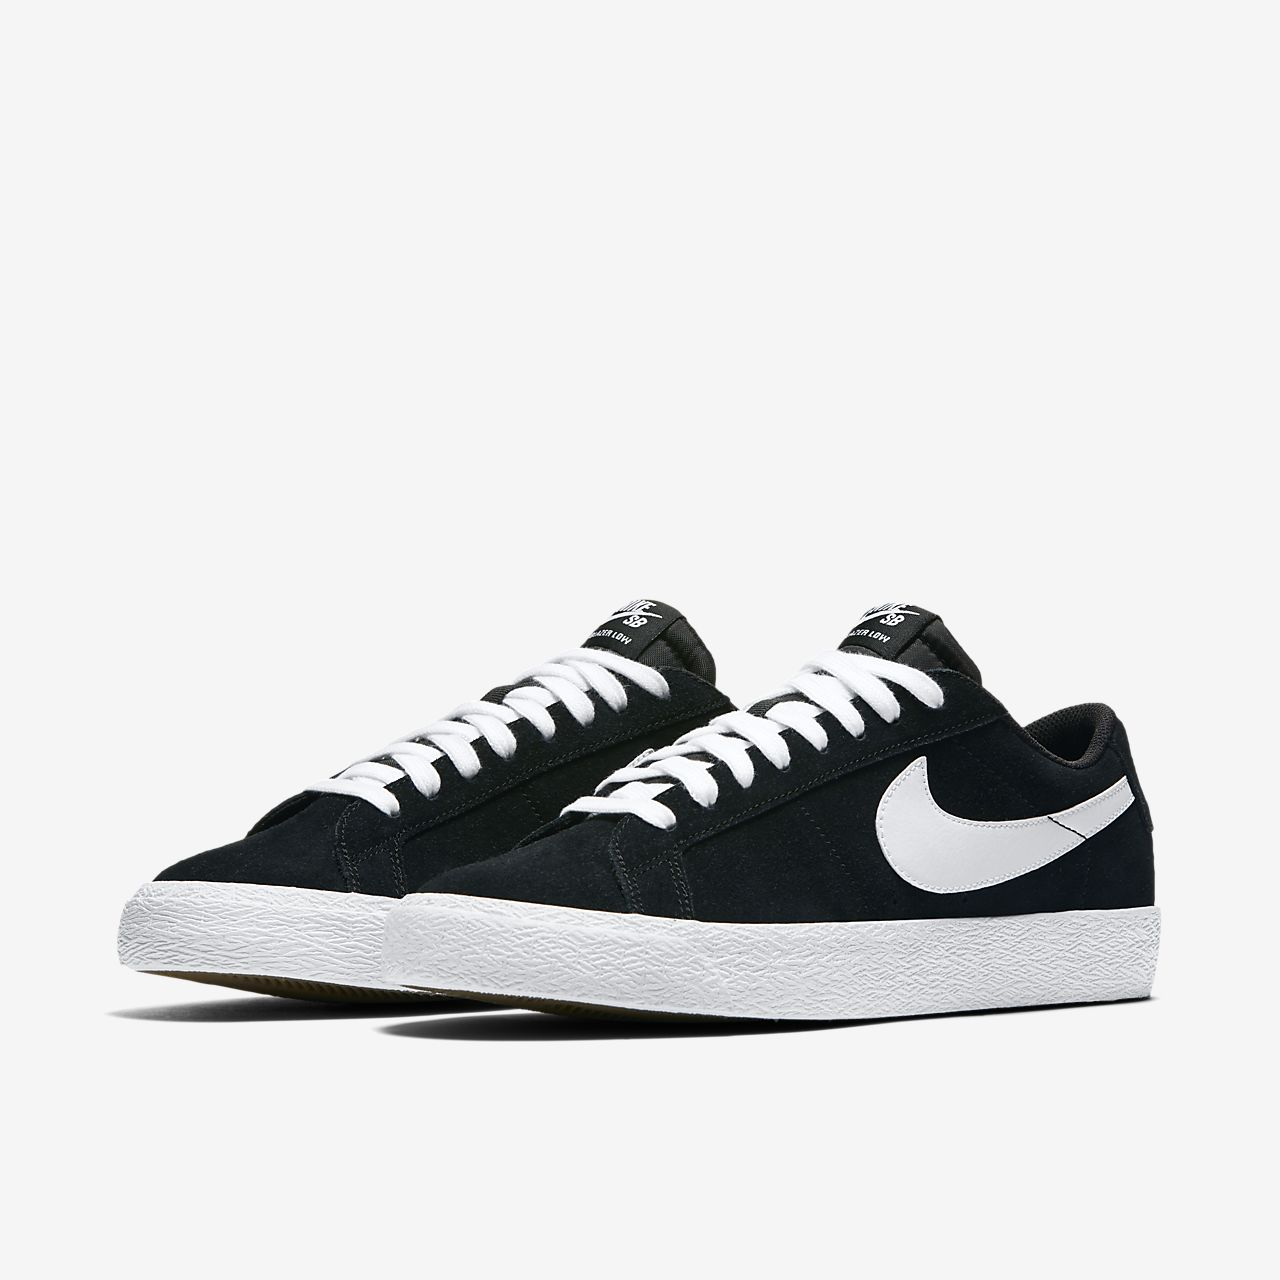 separation shoes f3cd5 1e954 ... Nike SB Blazer Zoom Low Men s Skateboarding Shoe